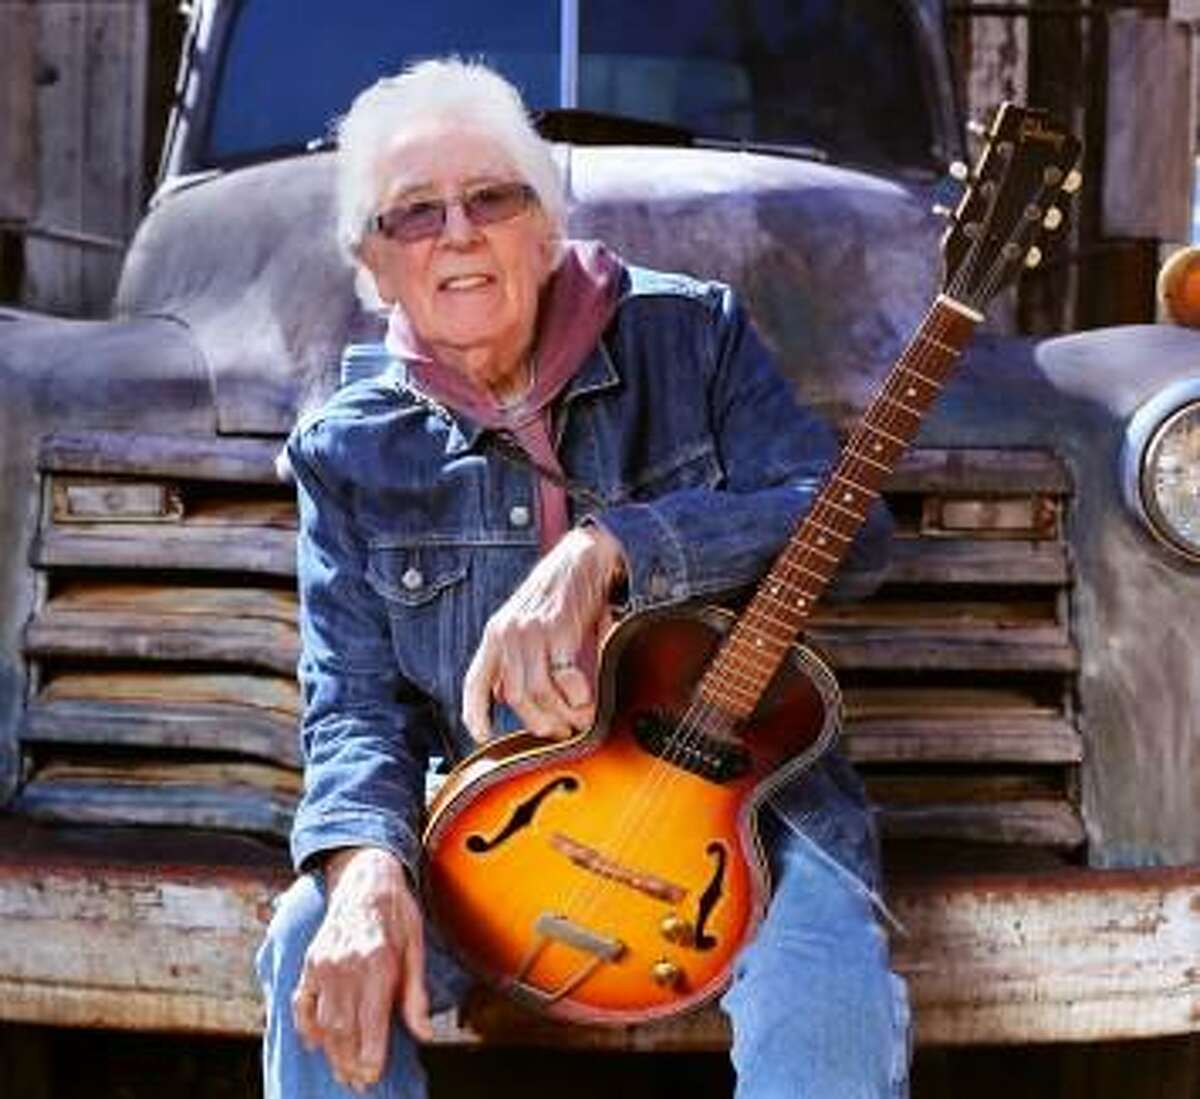 British blues great John Mayall will be at the Fairfield Theatre Company's StageOne venue Aug. 15.